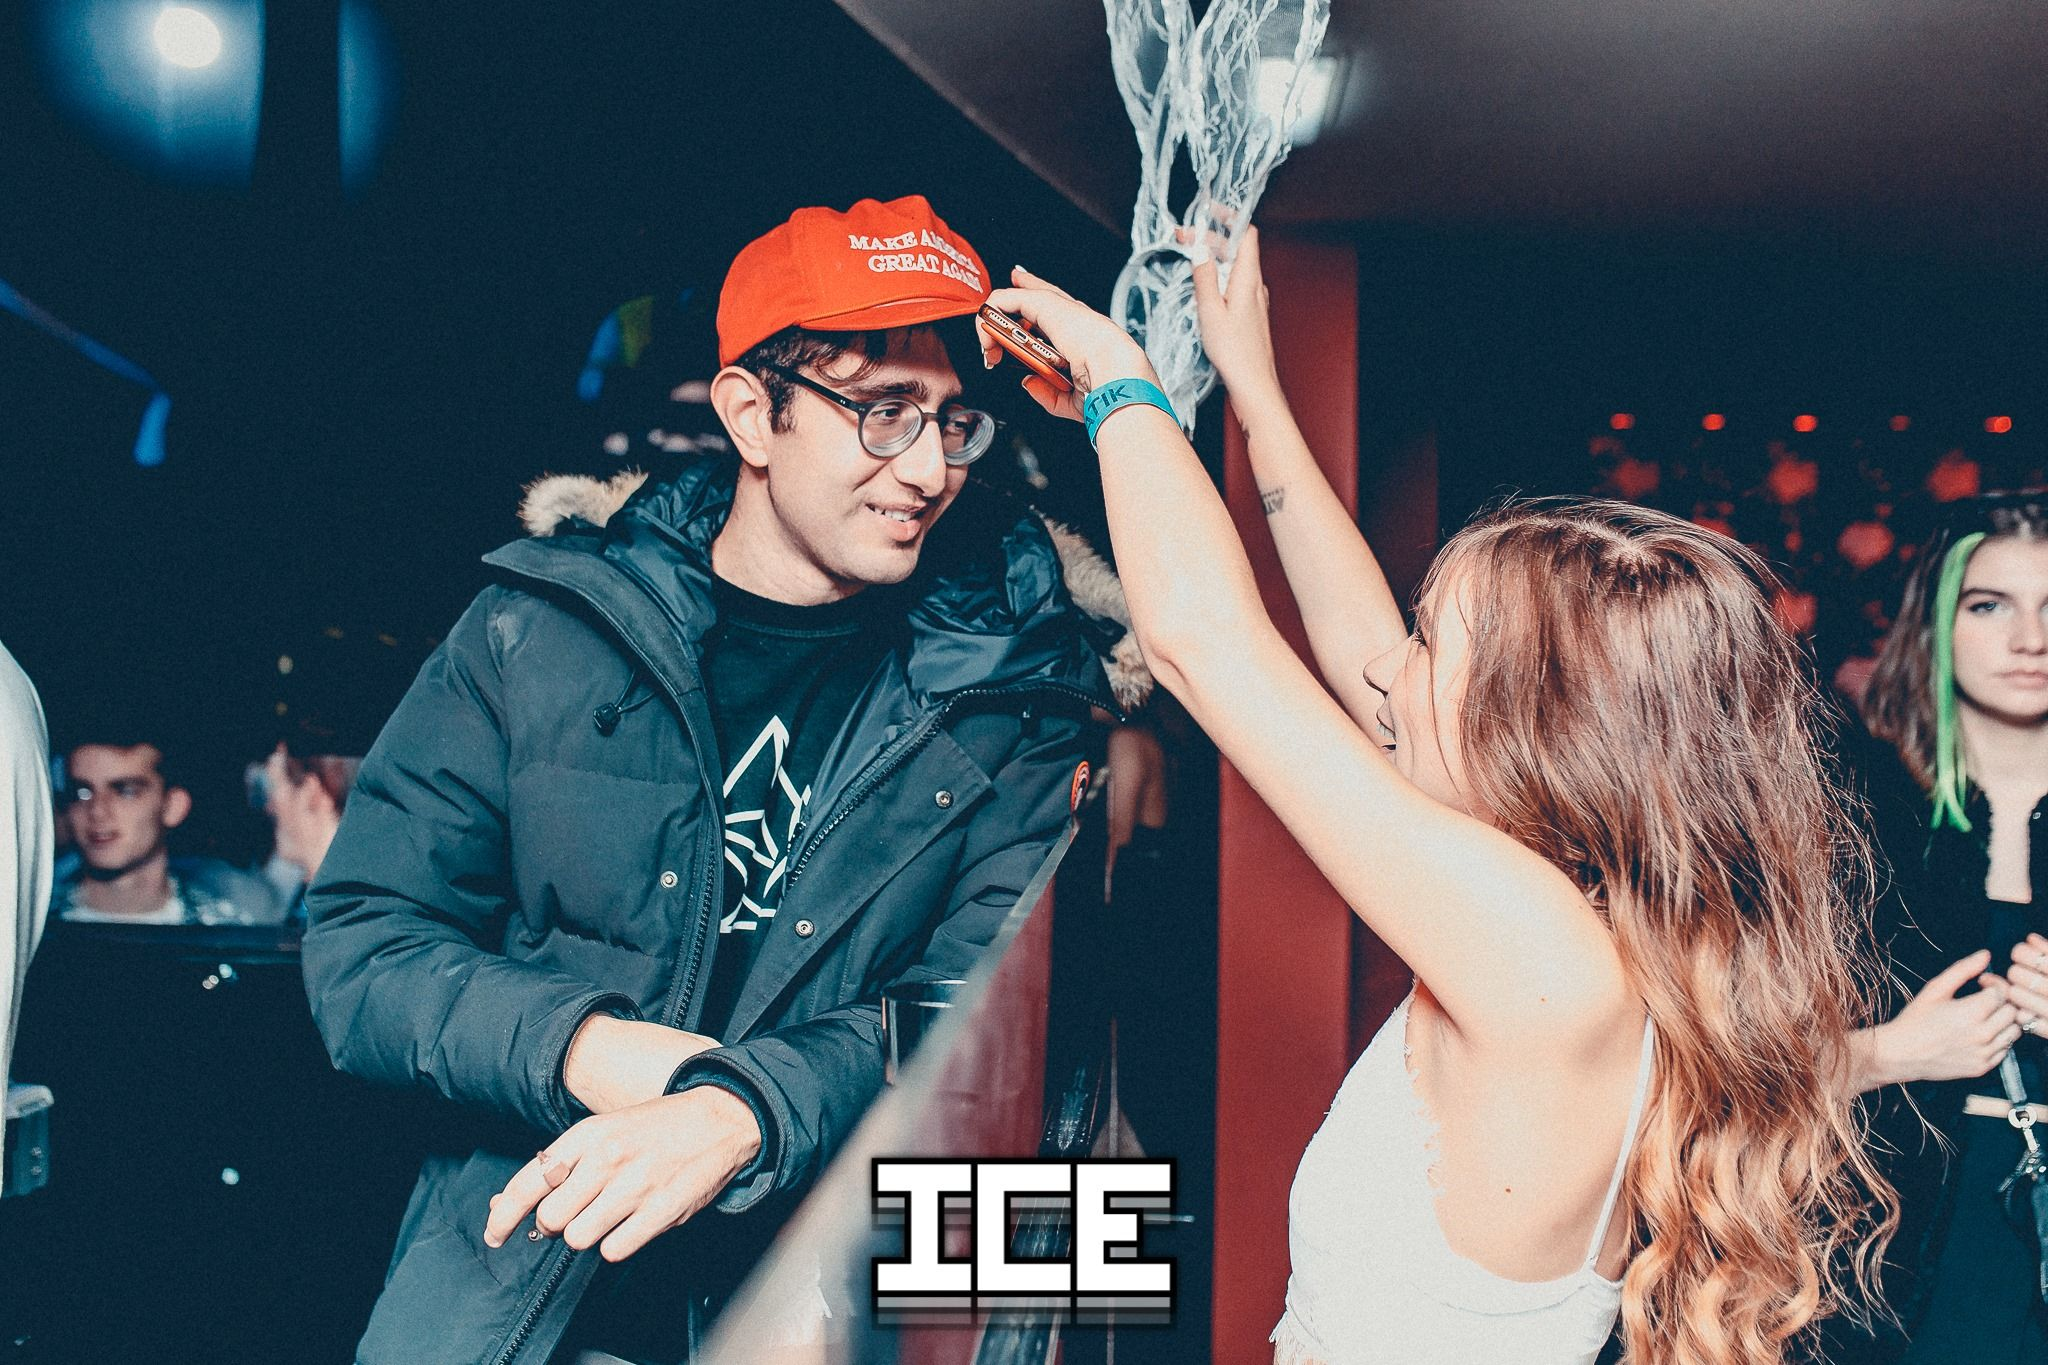 Image may contain: Night Club, Stage, Club, Hat, Apparel, Clothing, Human, Person